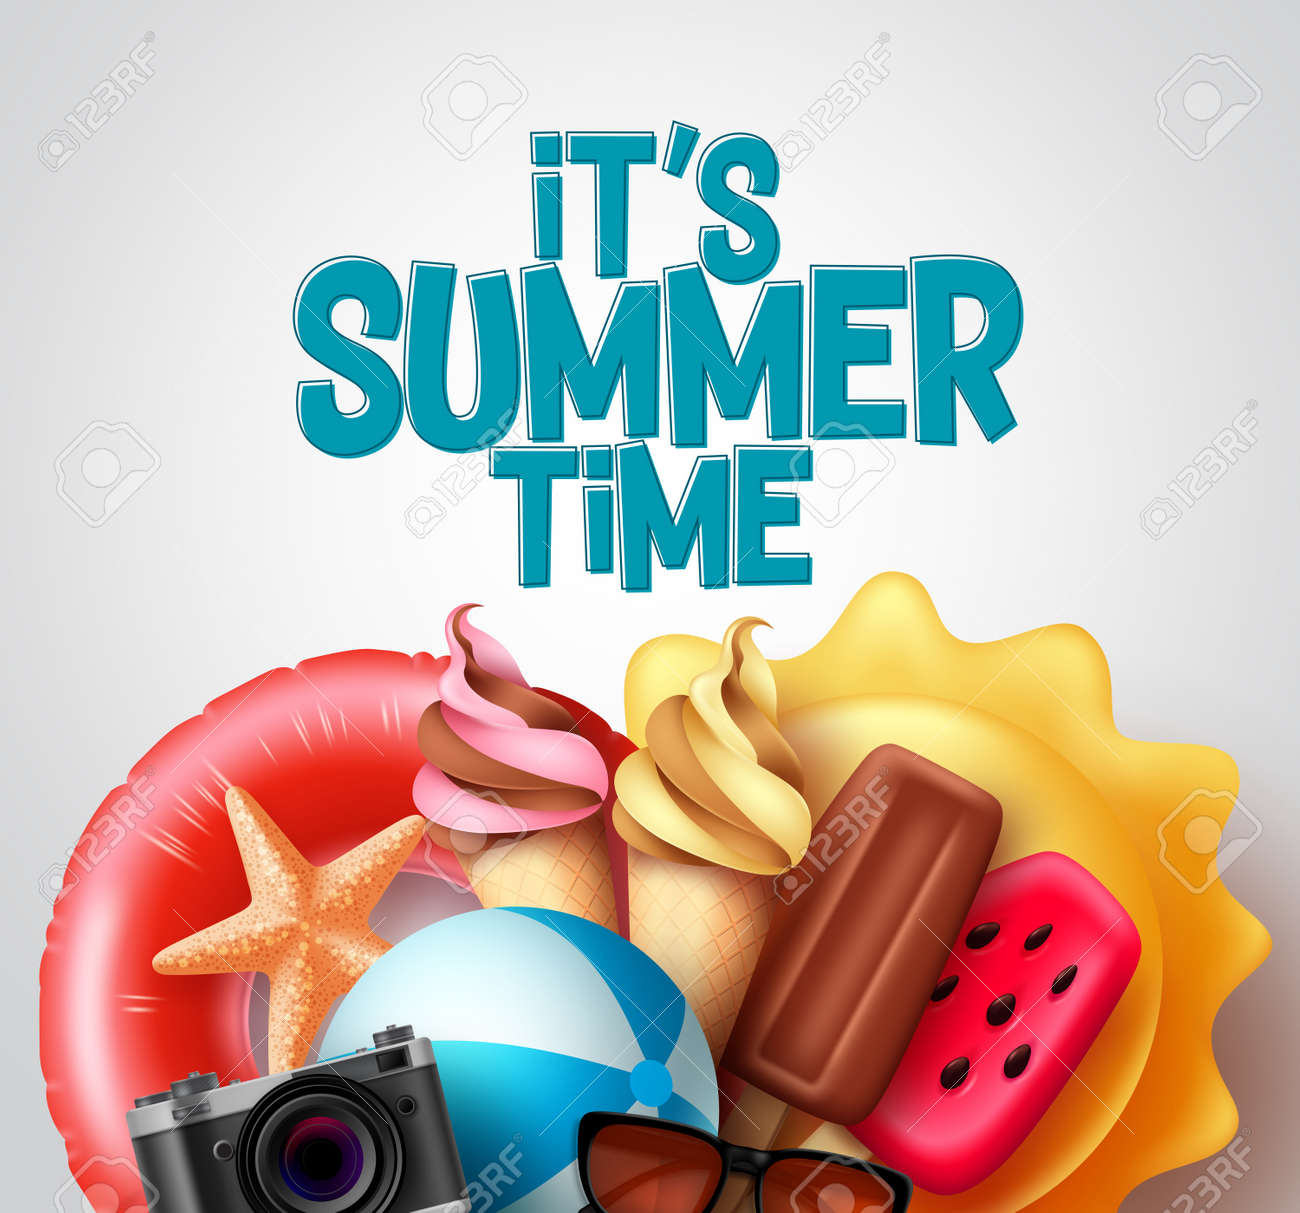 Summer time vector design. It's summer time text with tropical food and beach elements like ice cream, floater, and beachball for tropical season. Vector illustration. - 171126417